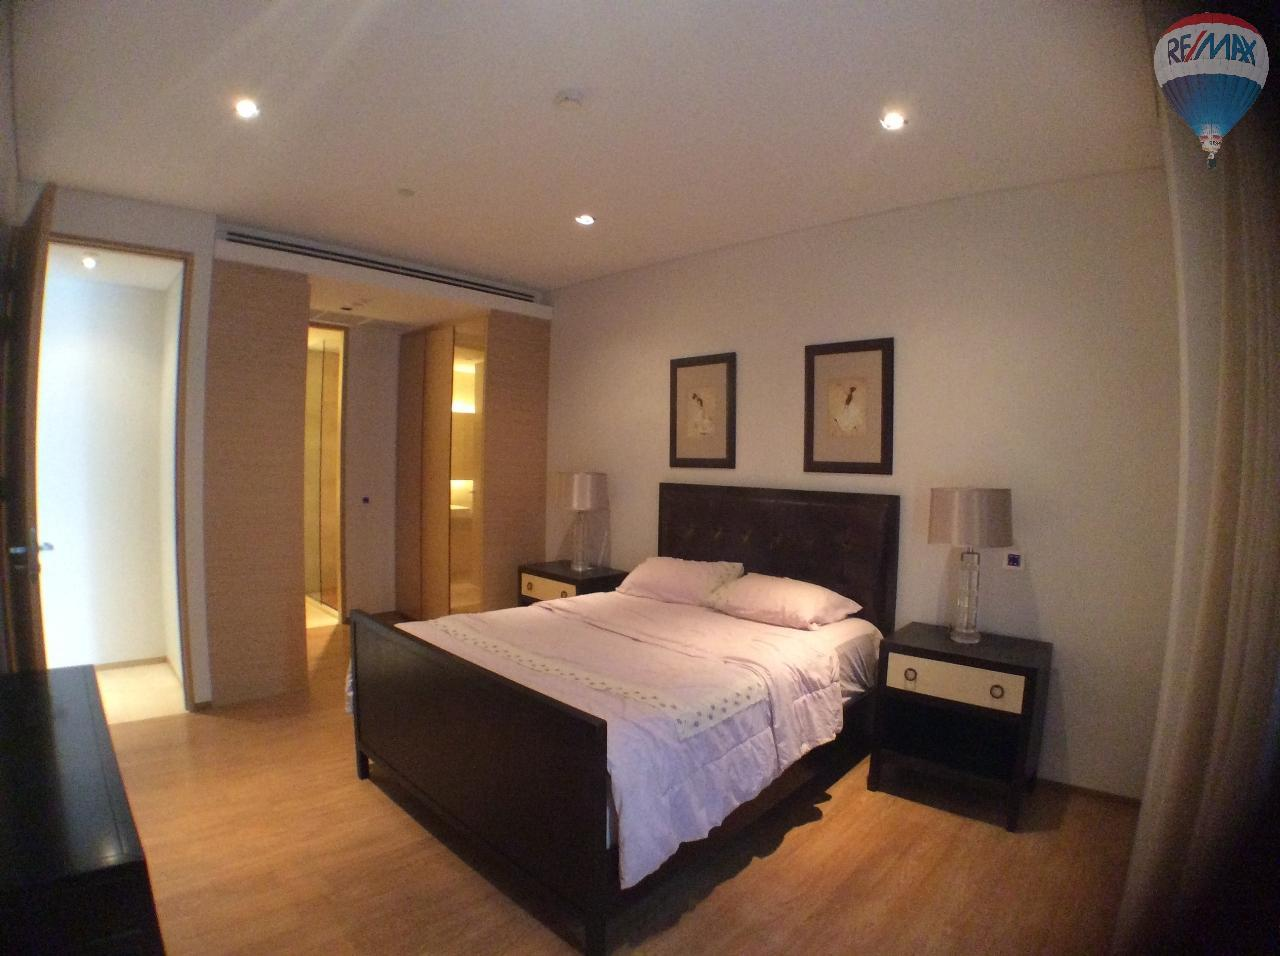 RE/MAX BestLife Agency's Saladaeng Residences 1 bedroom, Saladaeng BTS, Silom MRT, condo for rent 7